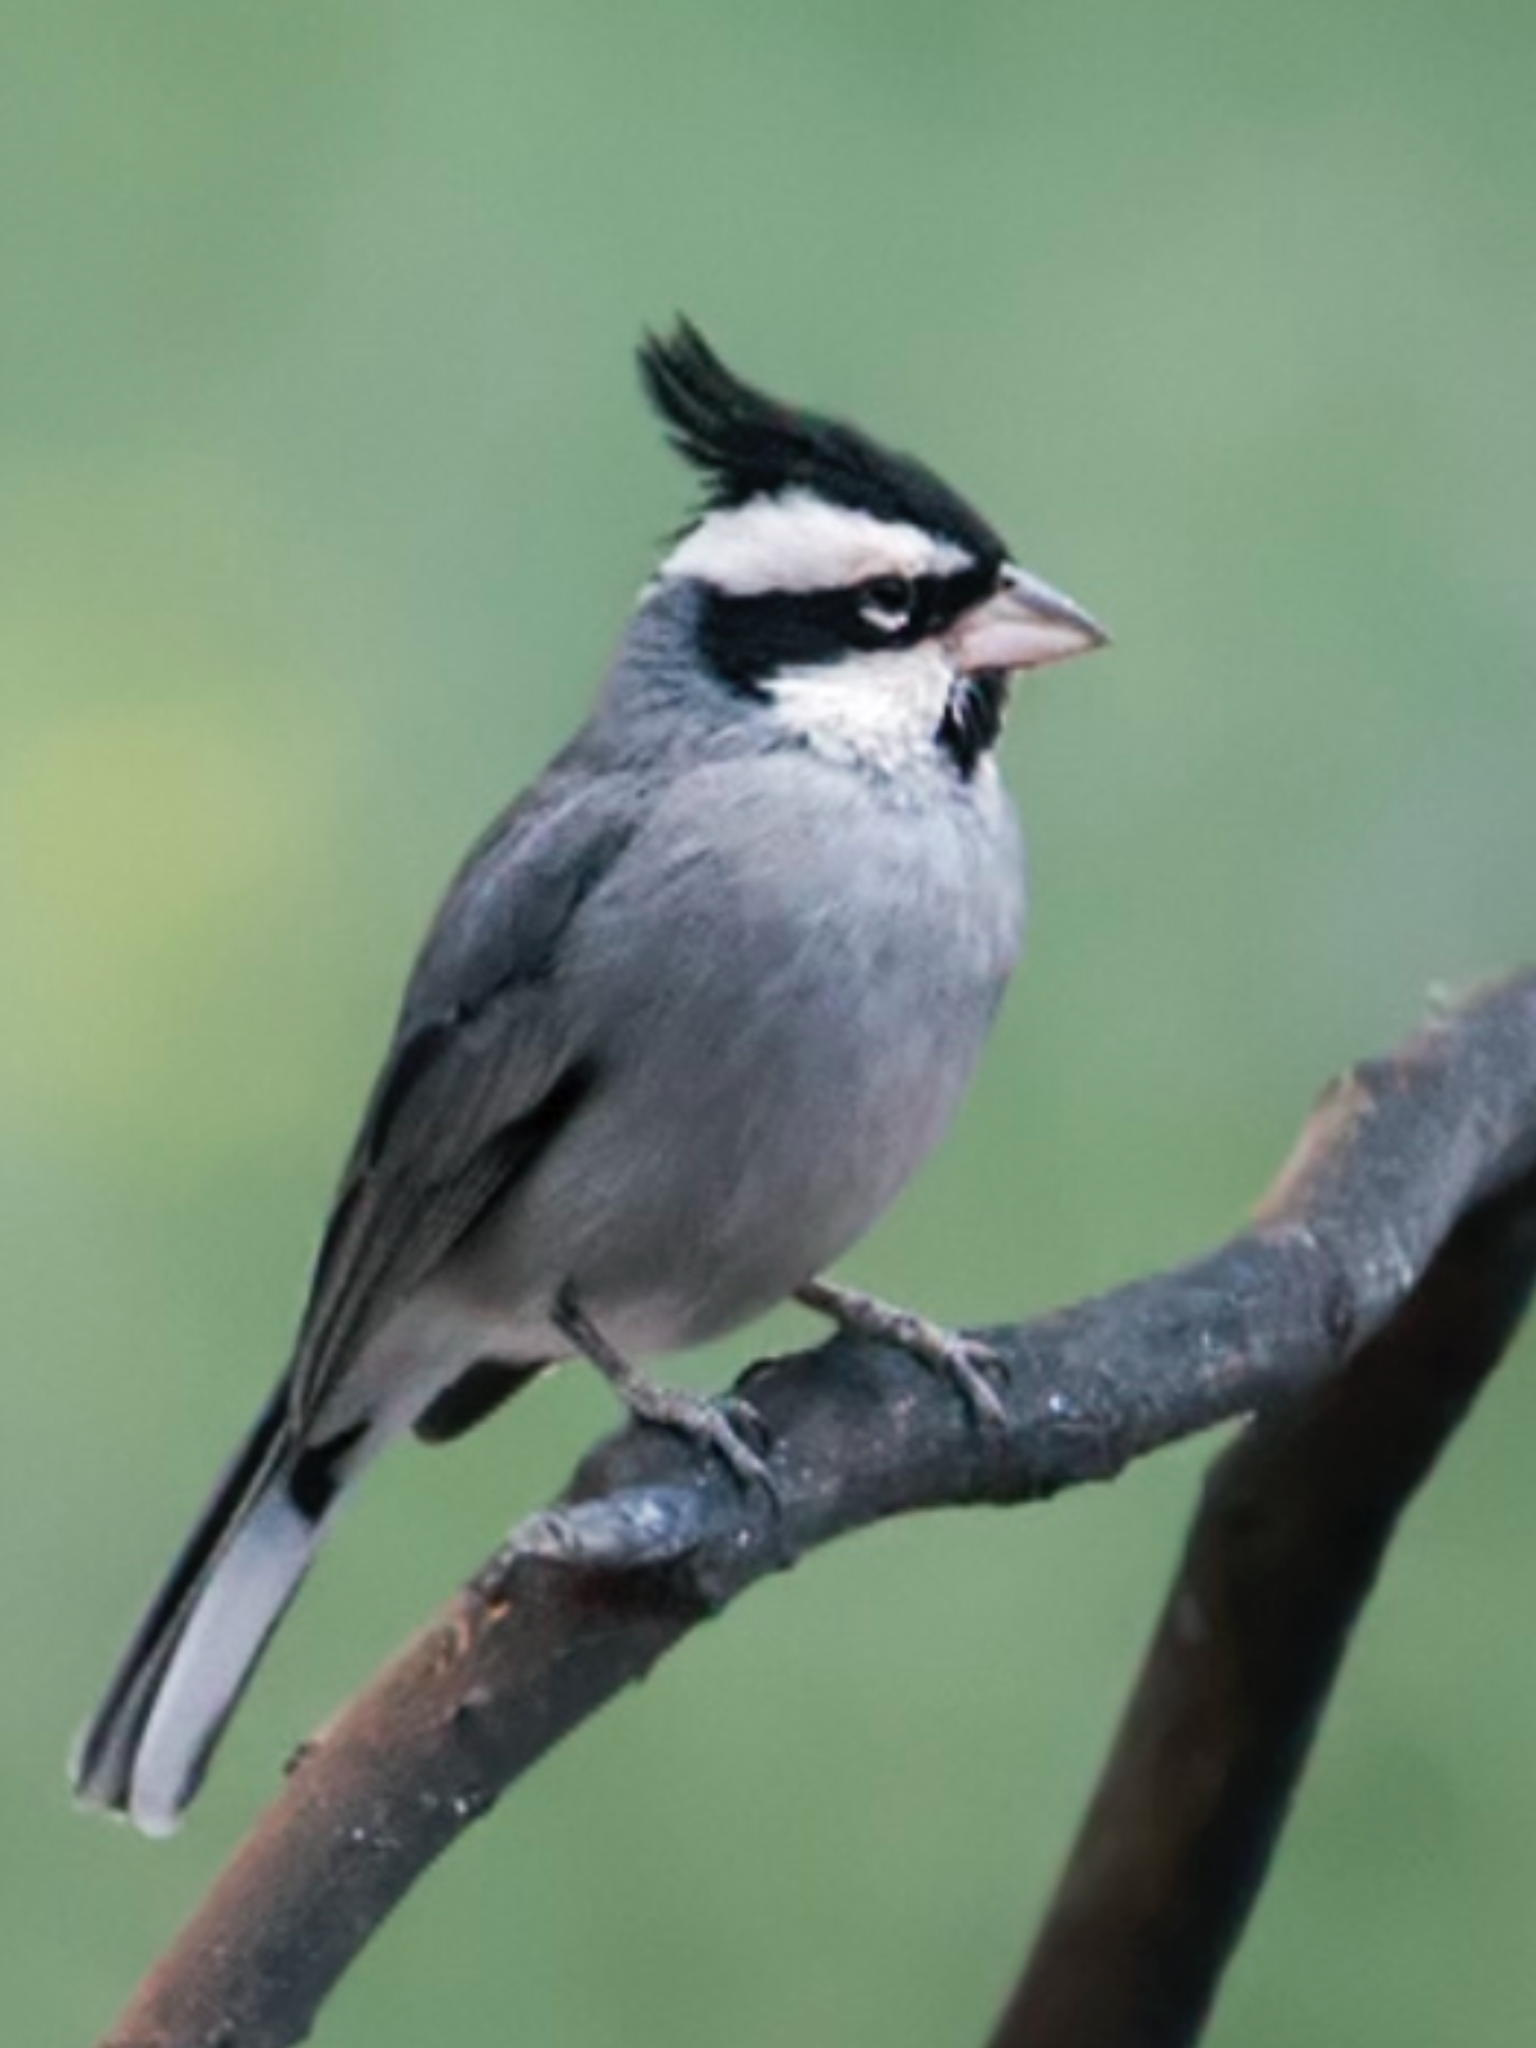 Black Crested Finch Lophospingus Pusillus A Tanager Ar Bo Py Uy C Nick Aves Diamante De Gould Y Beautiful